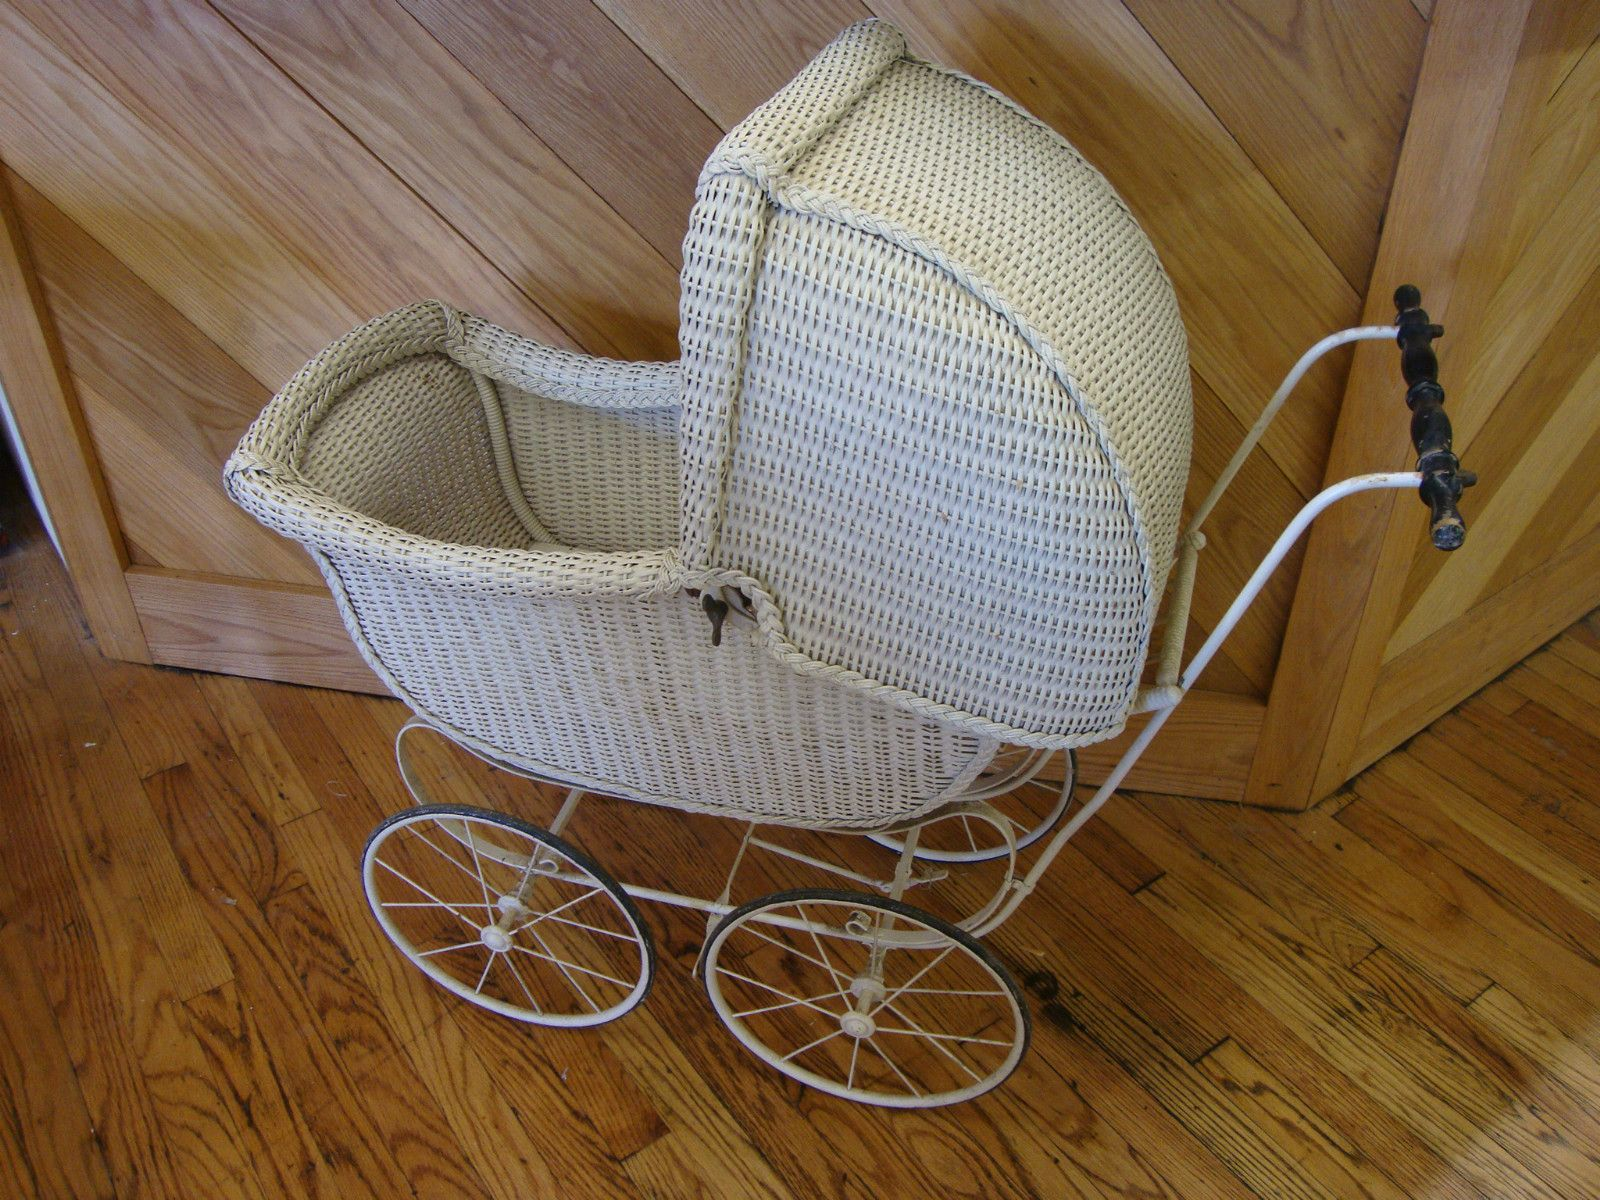 Details about Antique white wicker baby / doll stroller